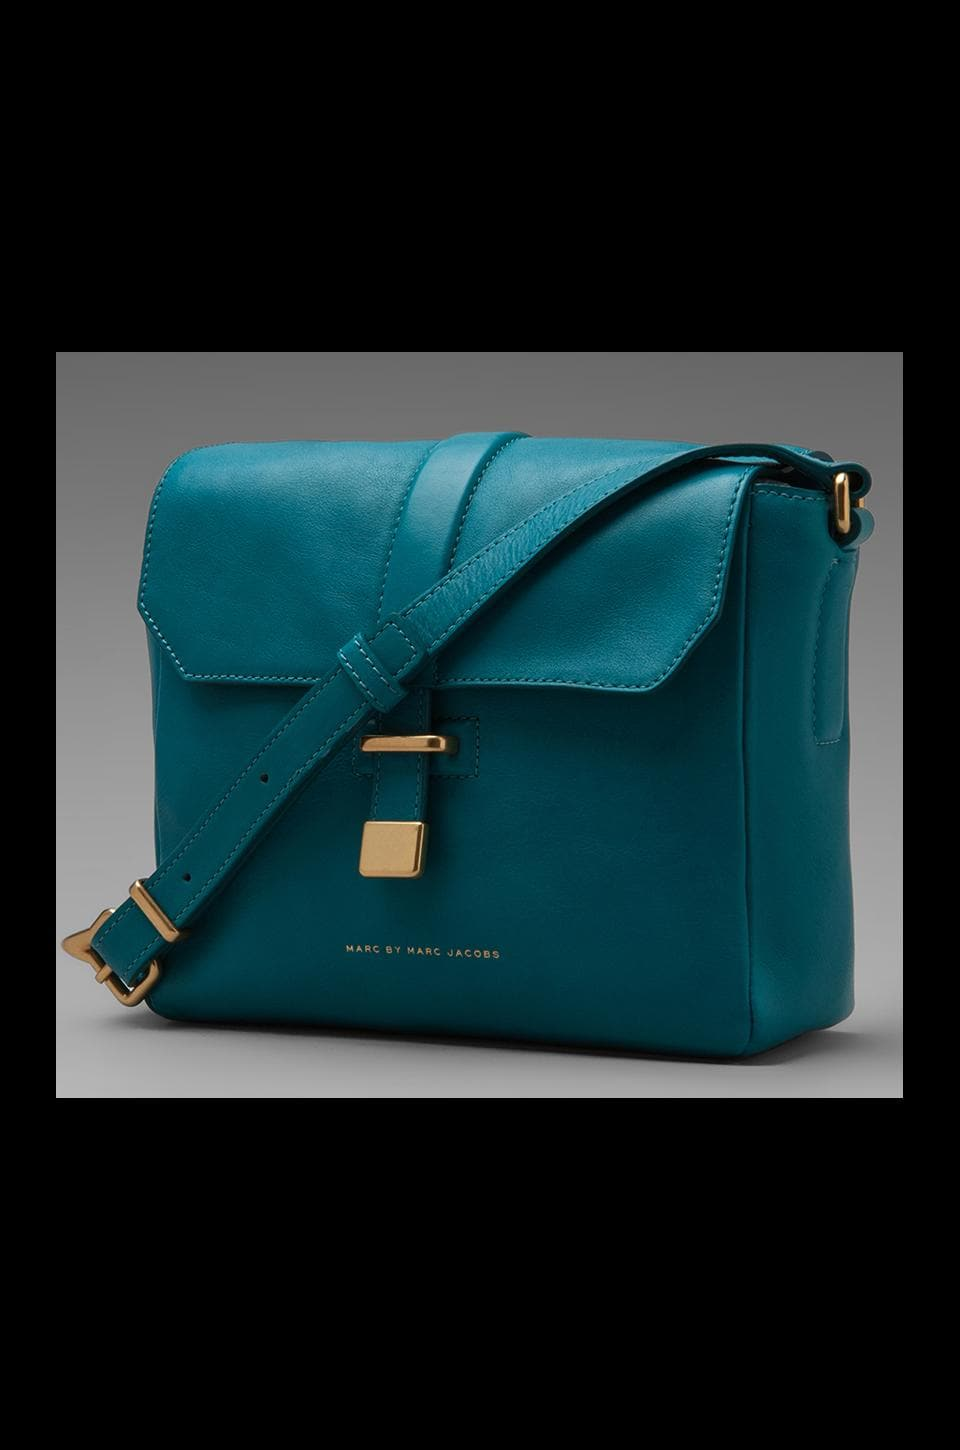 Marc by Marc Jacobs Natural Selection Mini Messenger in Deep Teal